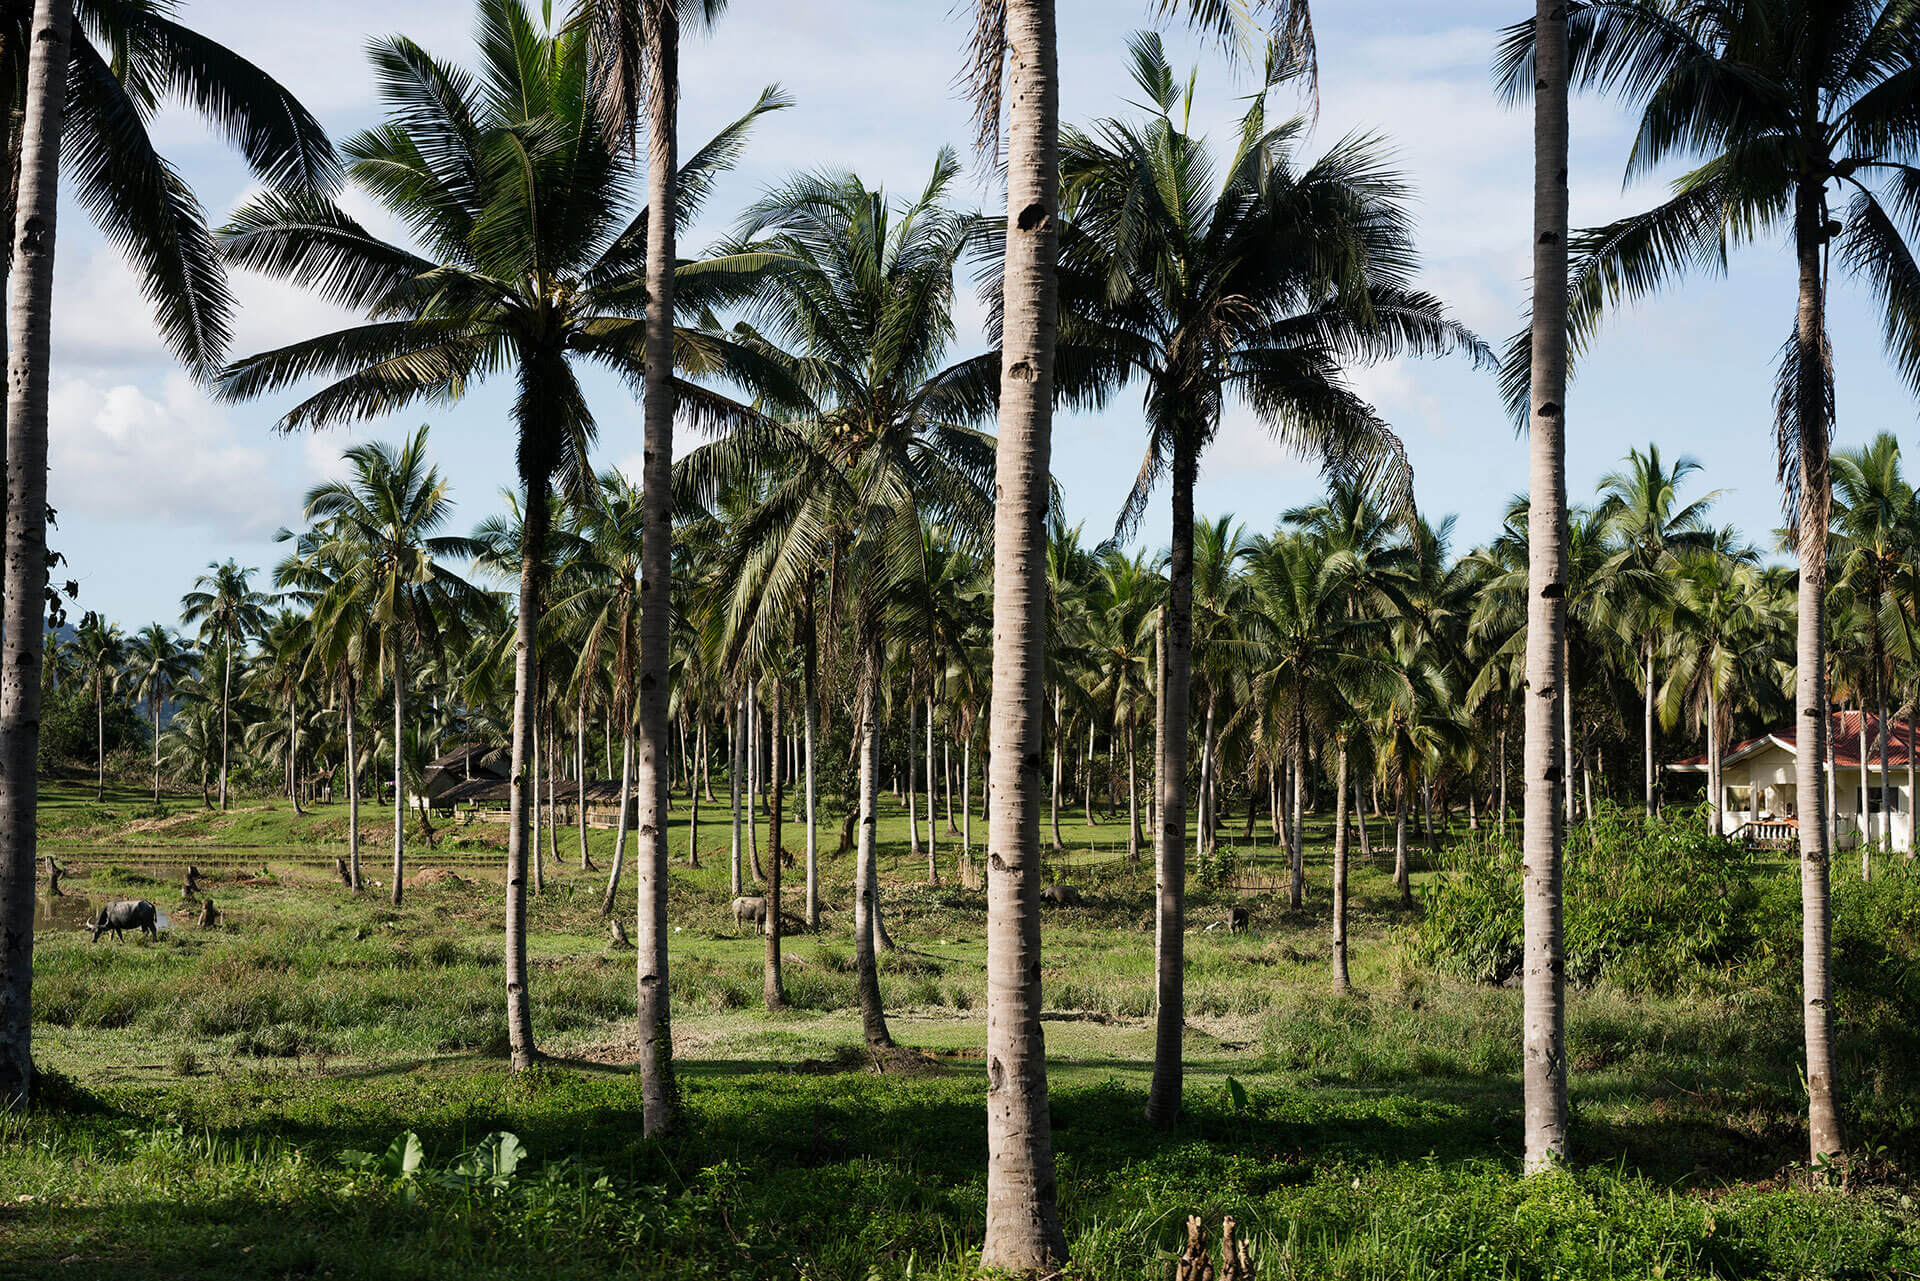 Coconut trees, photo by Sonny Thakur